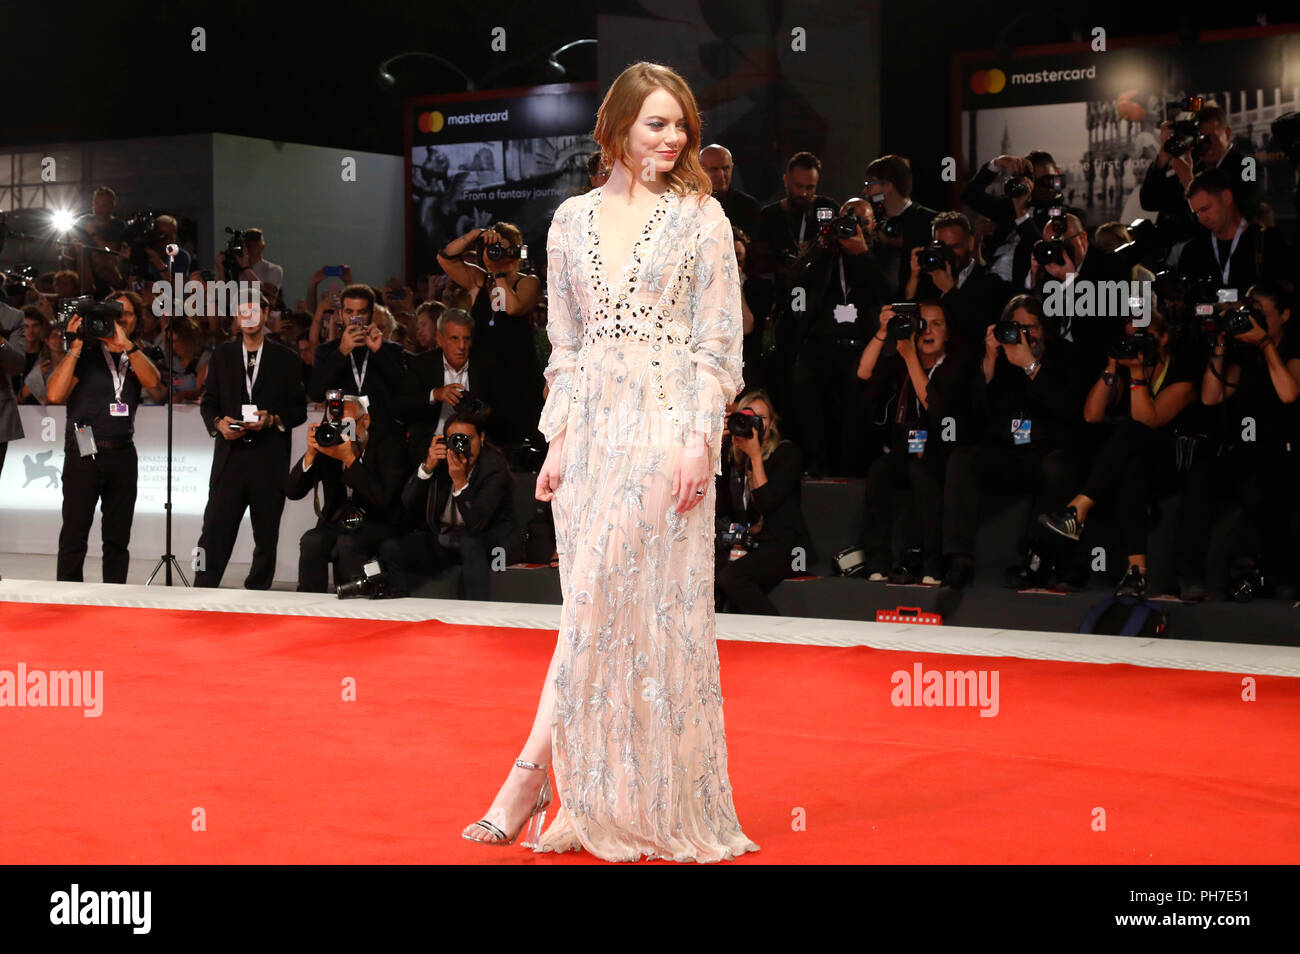 Venice, Italy. 30th Aug 2018. Emma Stone attending the 'The Favourite' premiere at the 75th Venice International Film Festival at the Palazzo del Cinema on August 30, 2018 in Venice, Italy Credit: Geisler-Fotopress GmbH/Alamy Live News - Stock Image